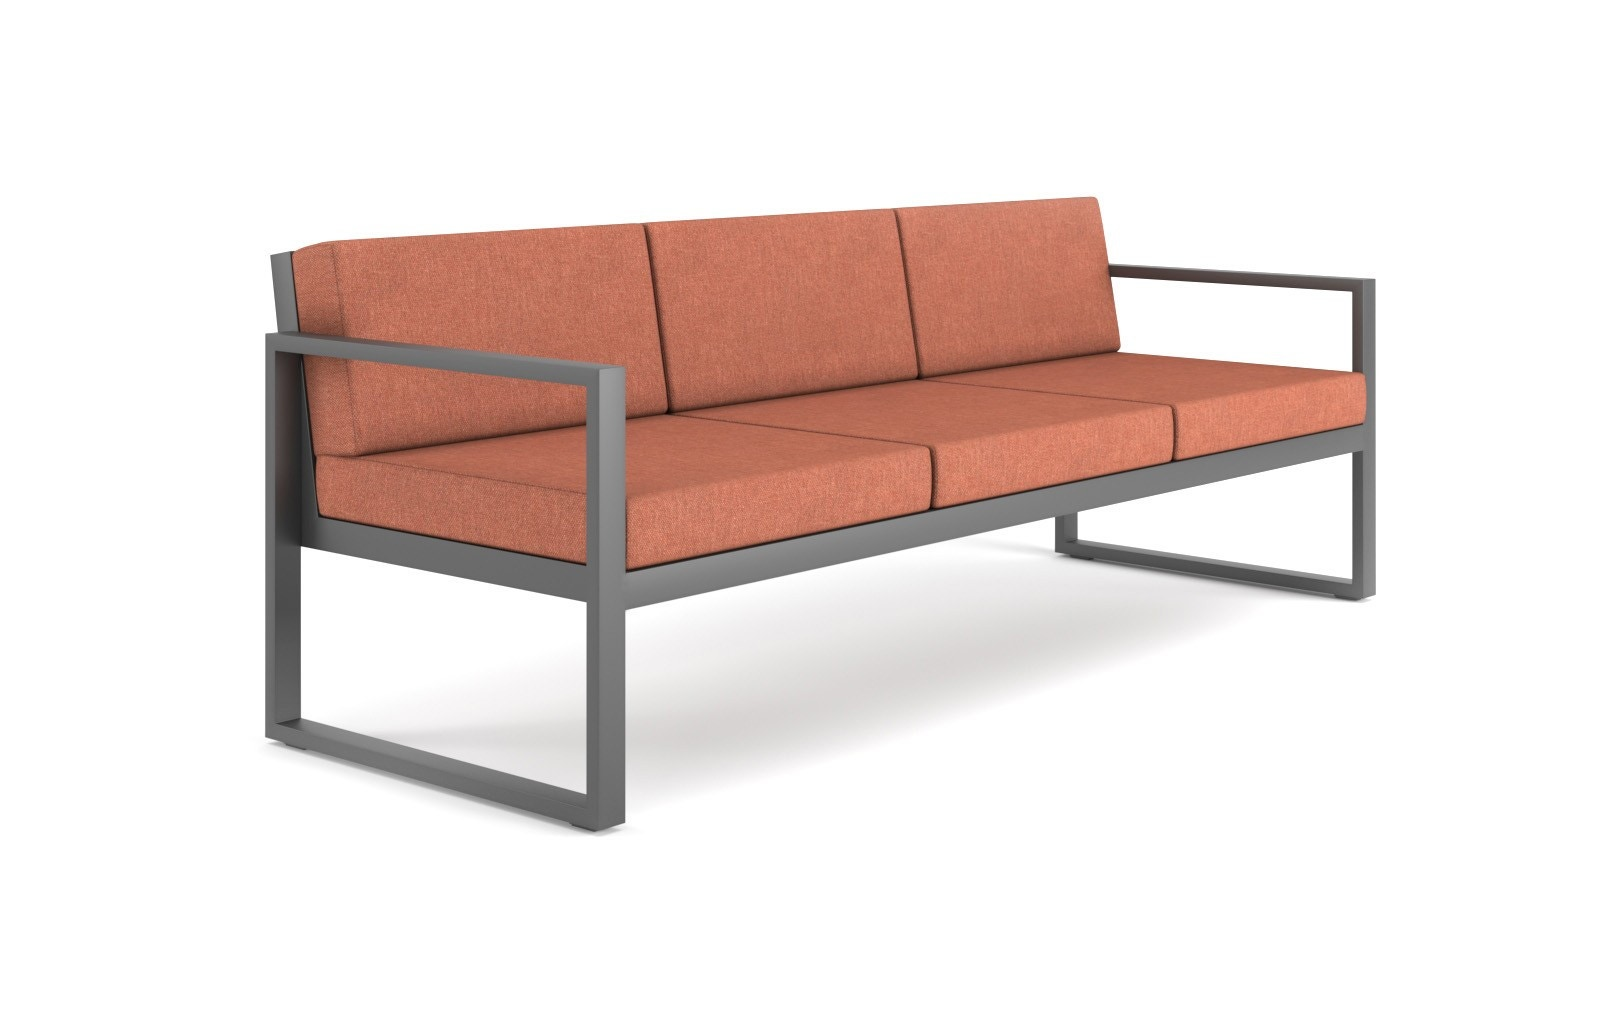 Dodeka Lemma Couch with Optional Heated Seats